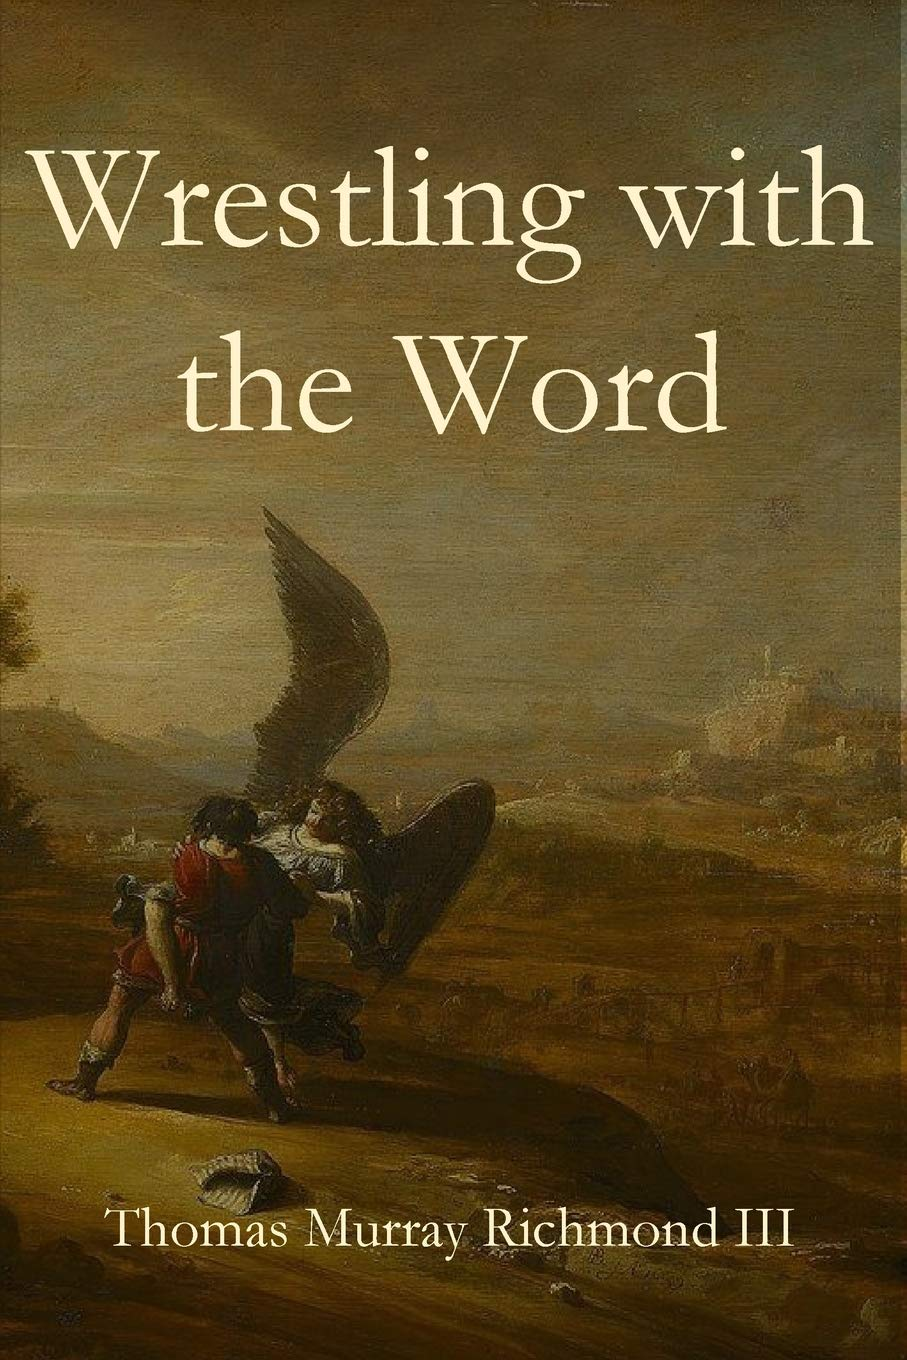 Wrestling with the Word: Thomas Murray Richmond: 9781949888010